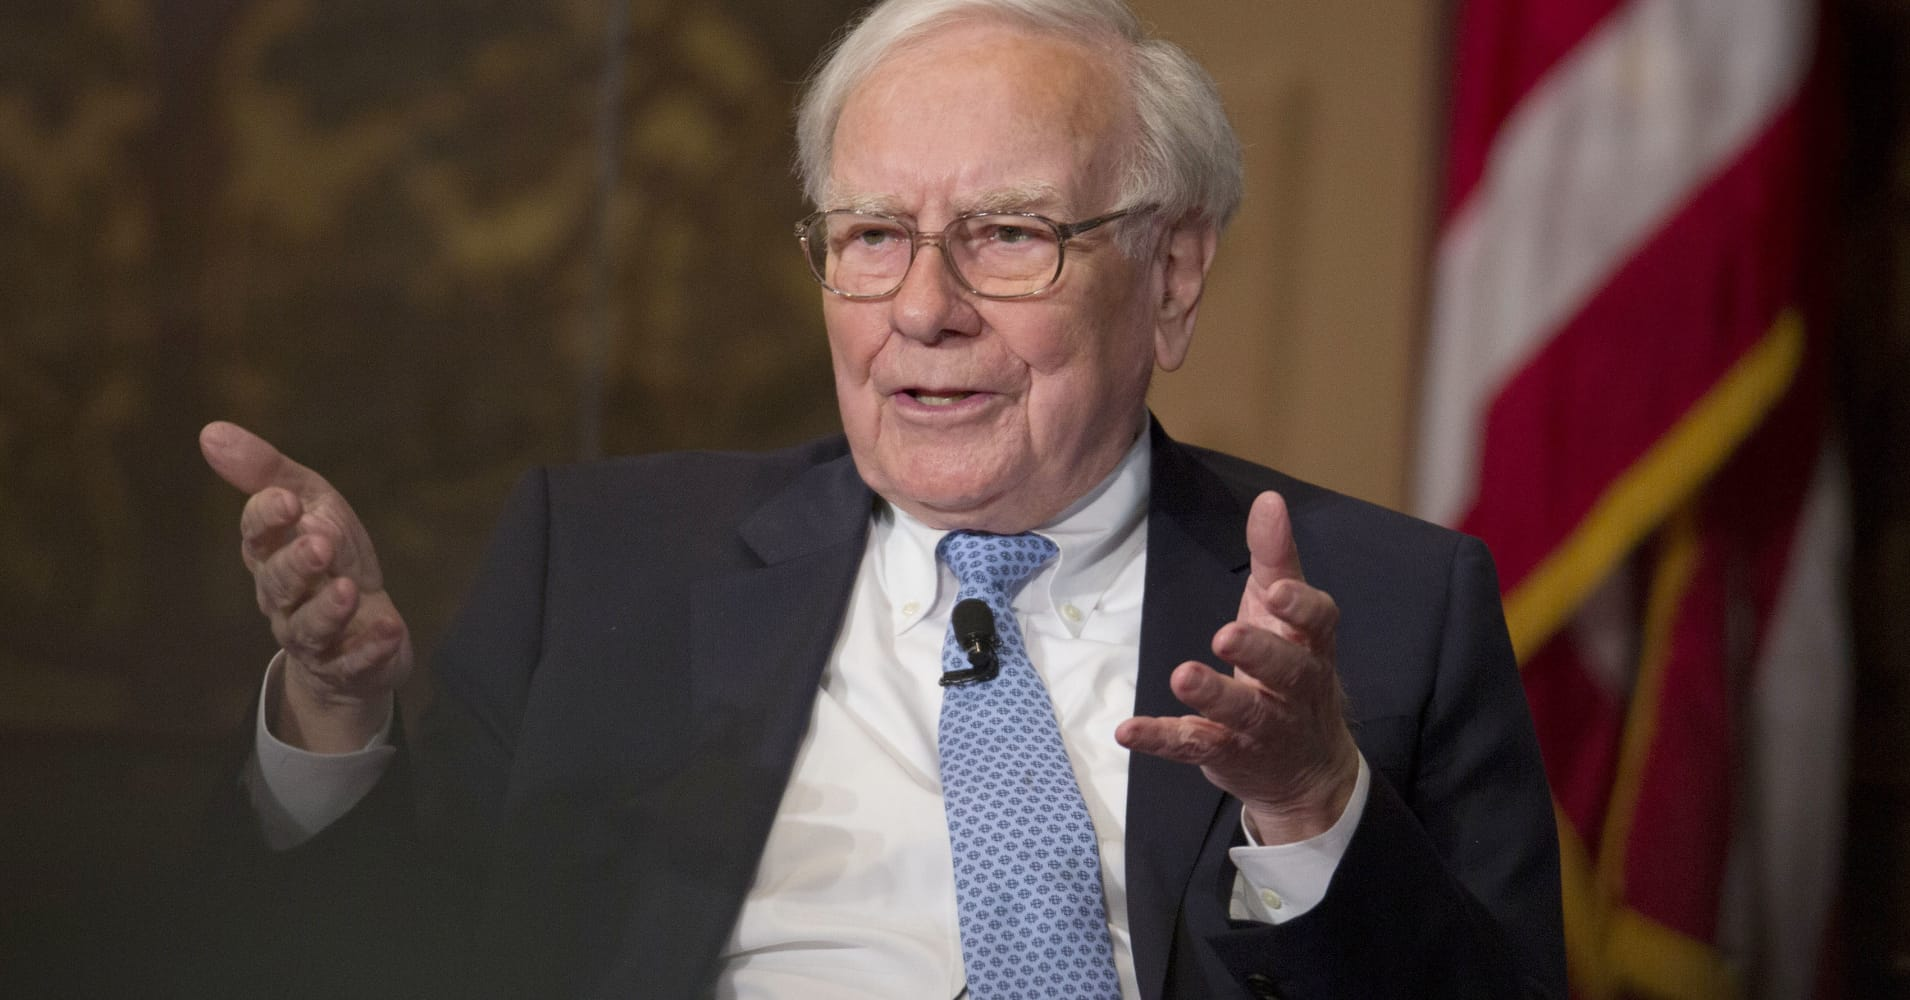 Buffett slams Wall Street 'monkeys', says hedge funds and advisors have cost clients $100 billion